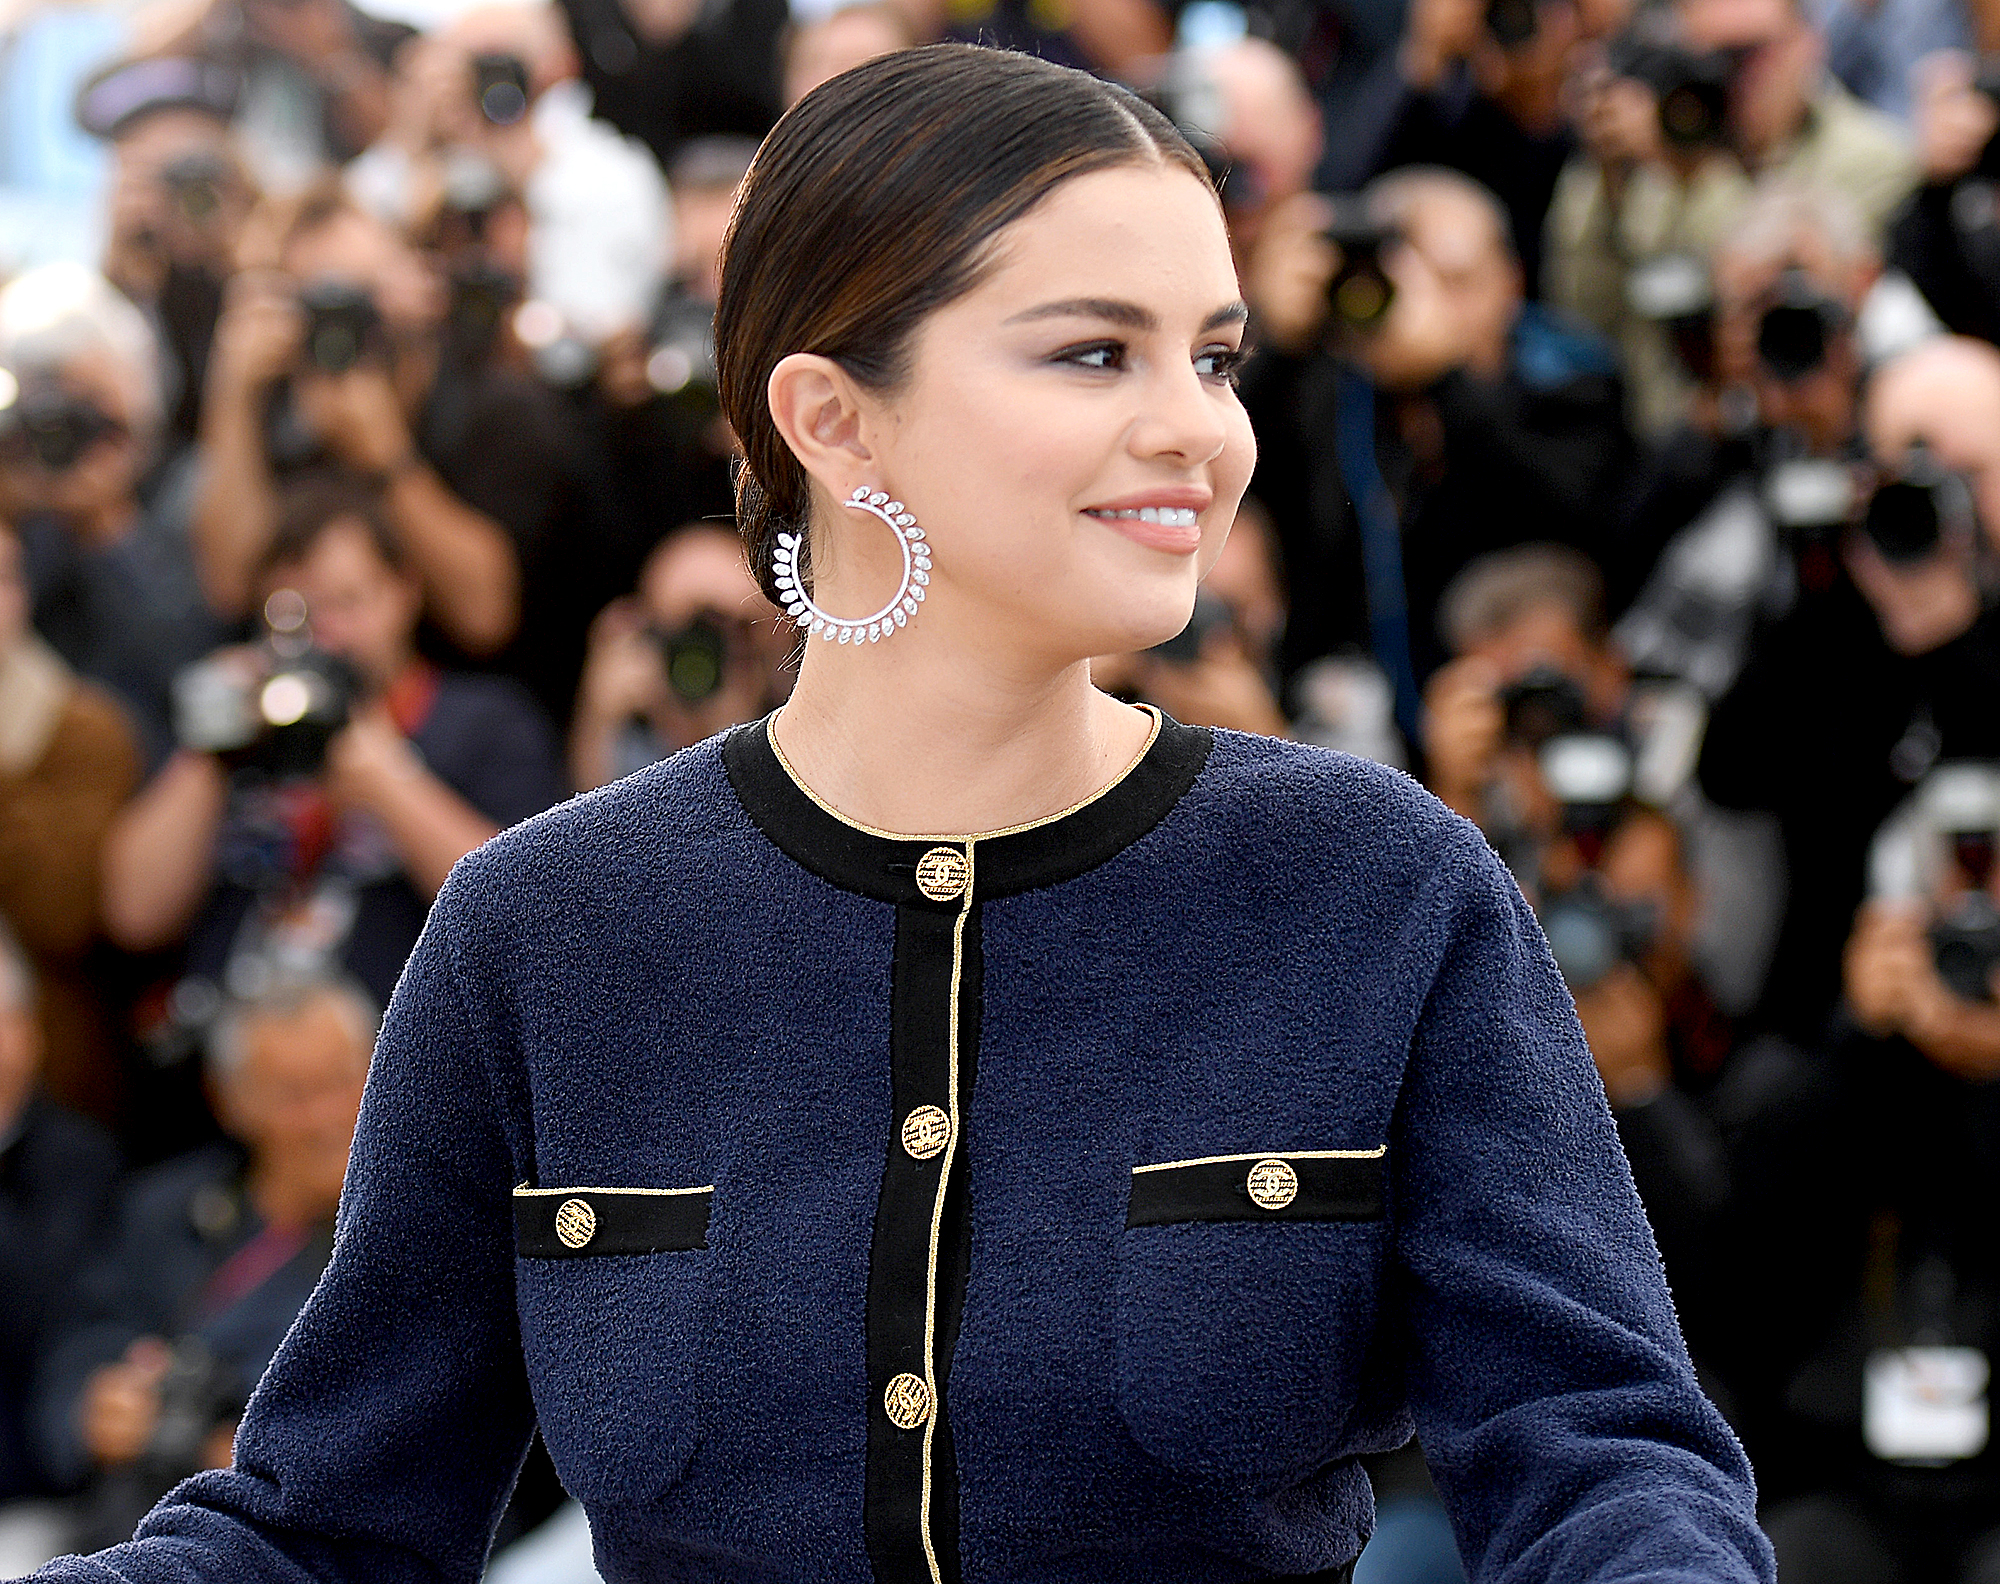 """Selena-Gomez-Cannes - CANNES, FRANCE – MAY 15: Selena Gomez attends the photocall for """"The Dead Don't Die"""" during the 72nd annual Cannes Film Festival on May 15, 2019 in Cannes, France. (Photo by Stephane Cardinale – Corbis/Corbis via Getty Images)"""